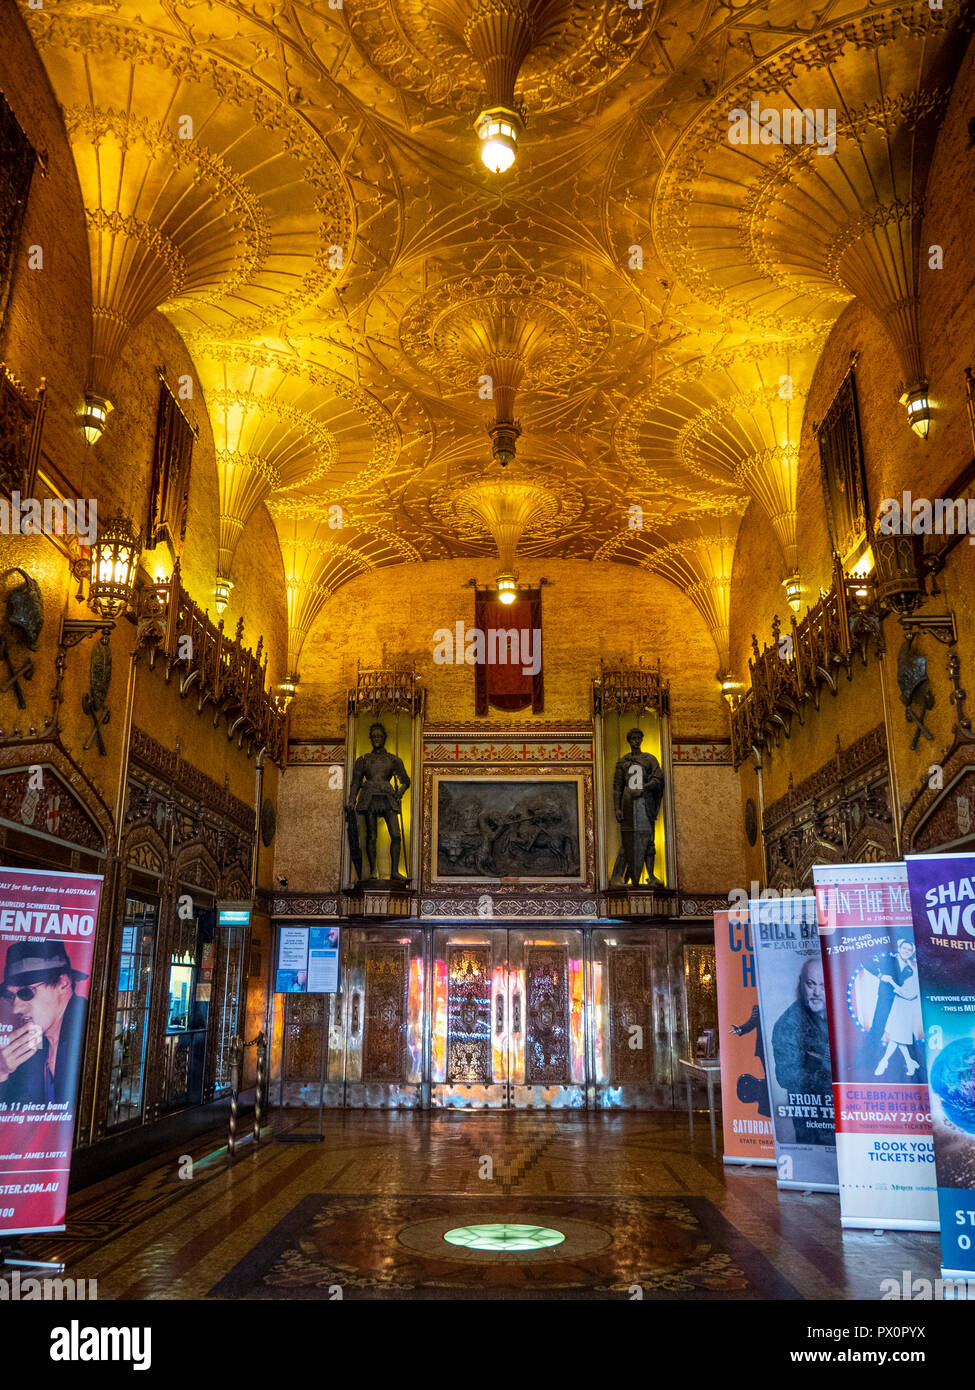 Fan vaulted ceiling and Gothic style foyer of the State Theatre featuring bronze statues Market Street Sydney NSW Australia. - Stock Image